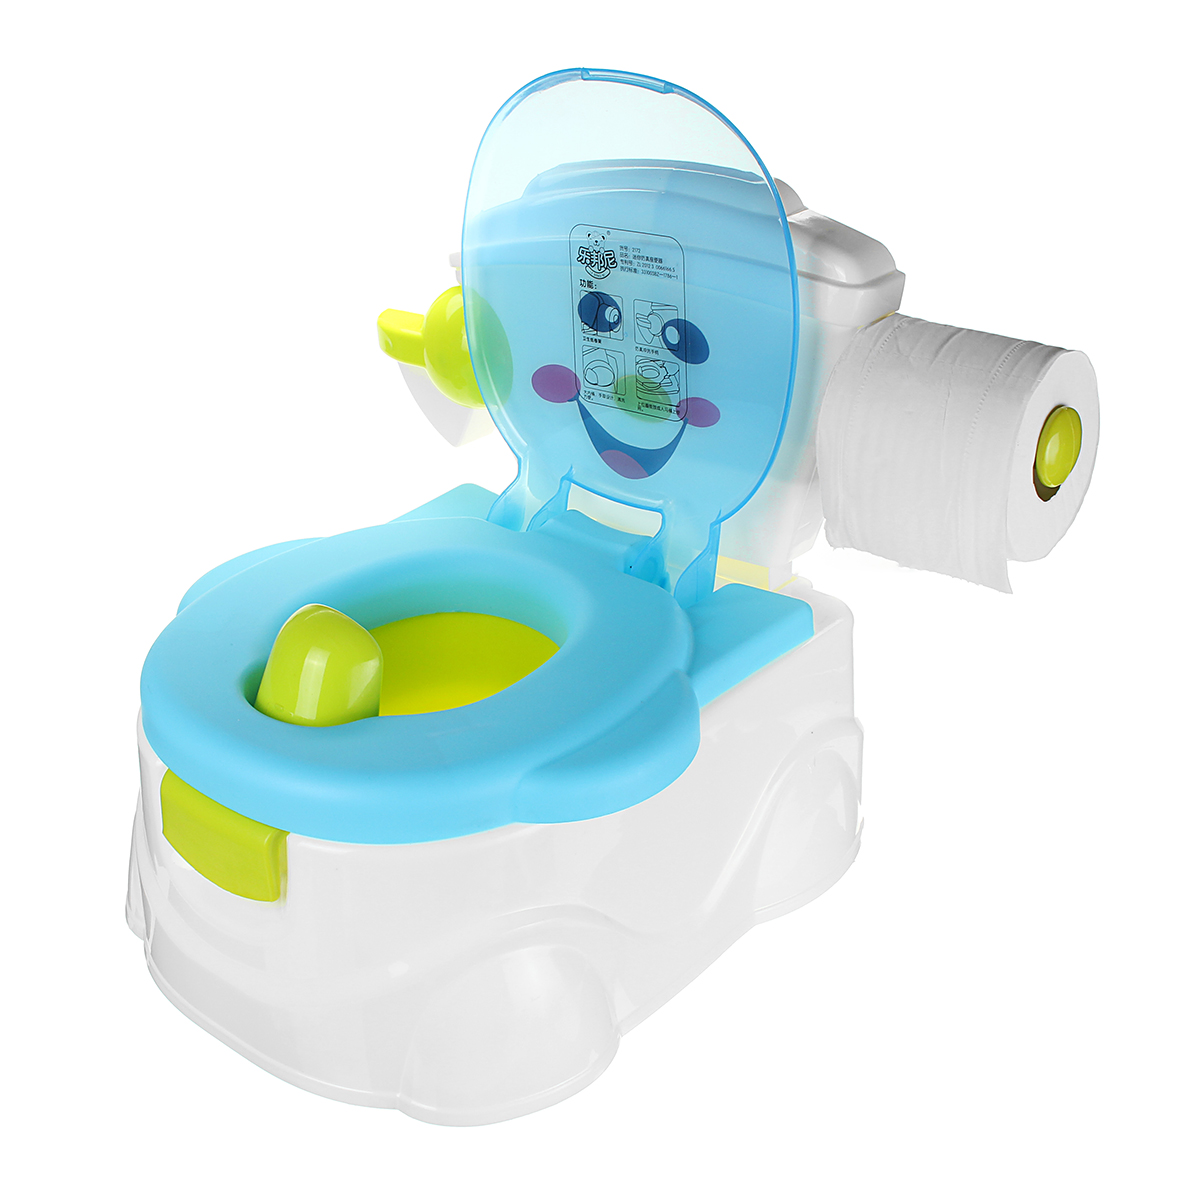 potty chair large child kitchen table 2 in1 portable music kids baby toilet trainer